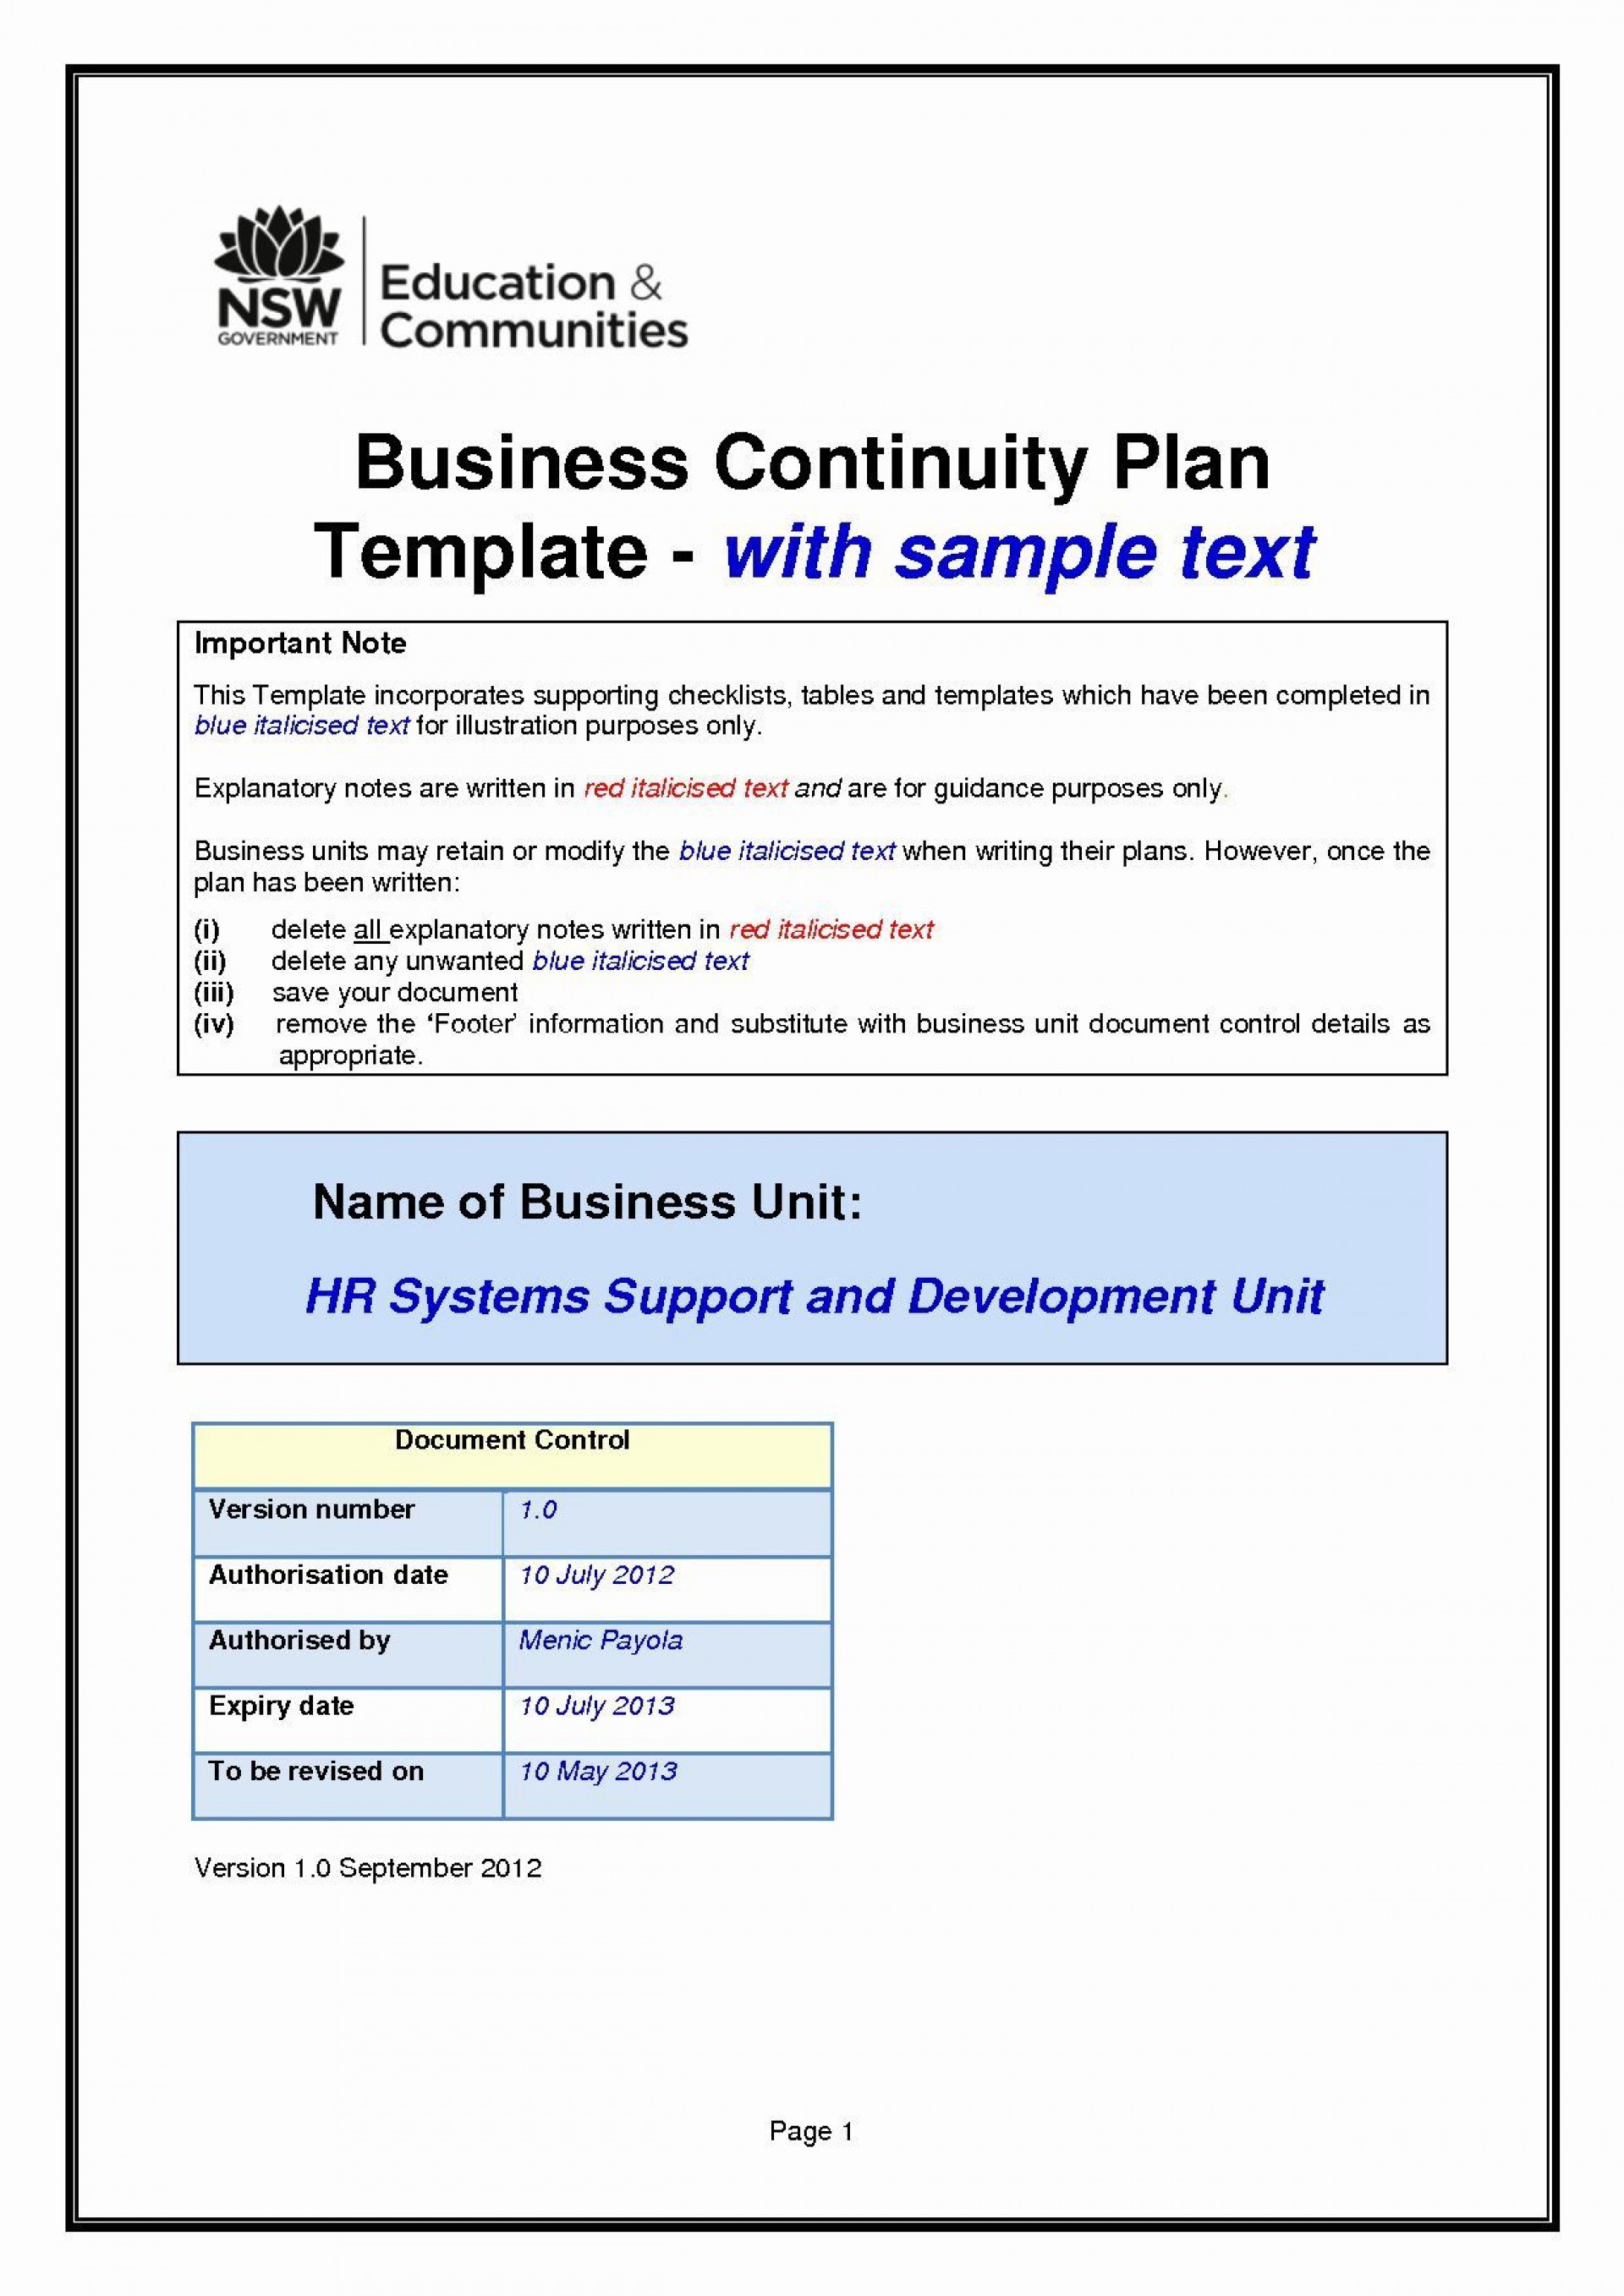 001 Unforgettable Simple Busines Continuity Plan Template Photo  Australia Sample For Small Businesse Basic Example1920